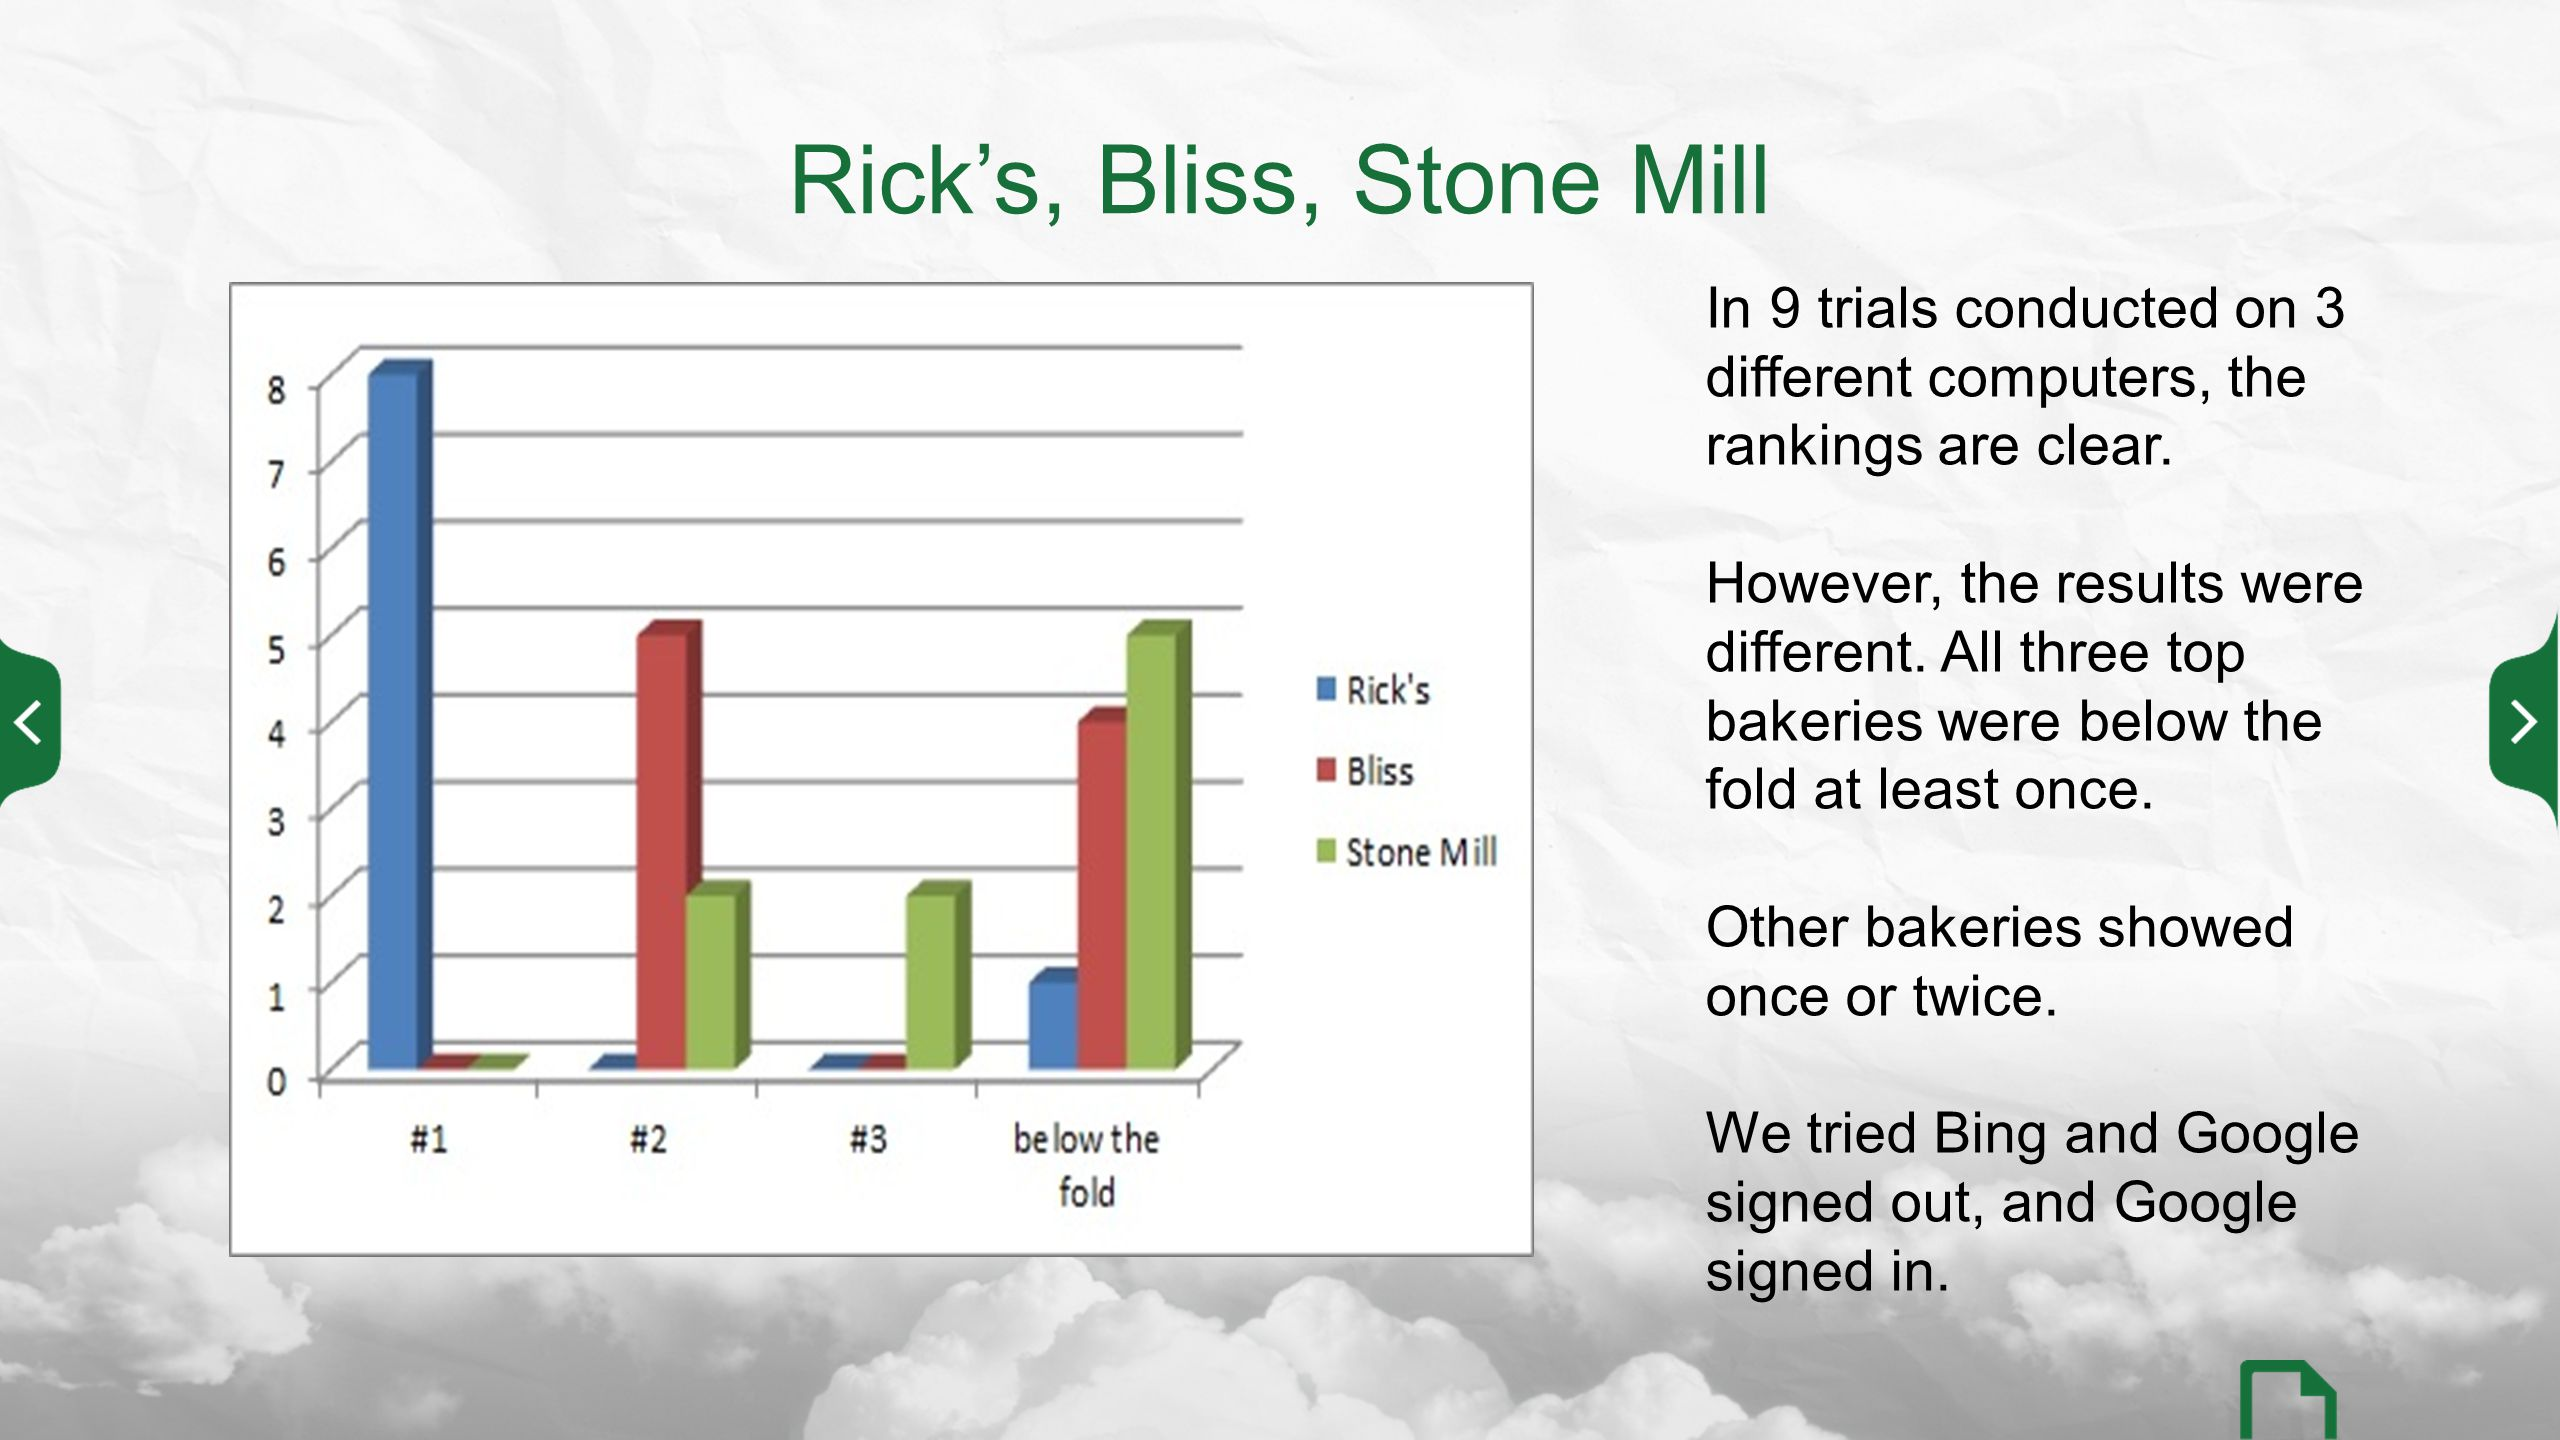 Rick's, Bliss, Stone Mill In 9 trials conducted on 3 different computers, the rankings are clear.